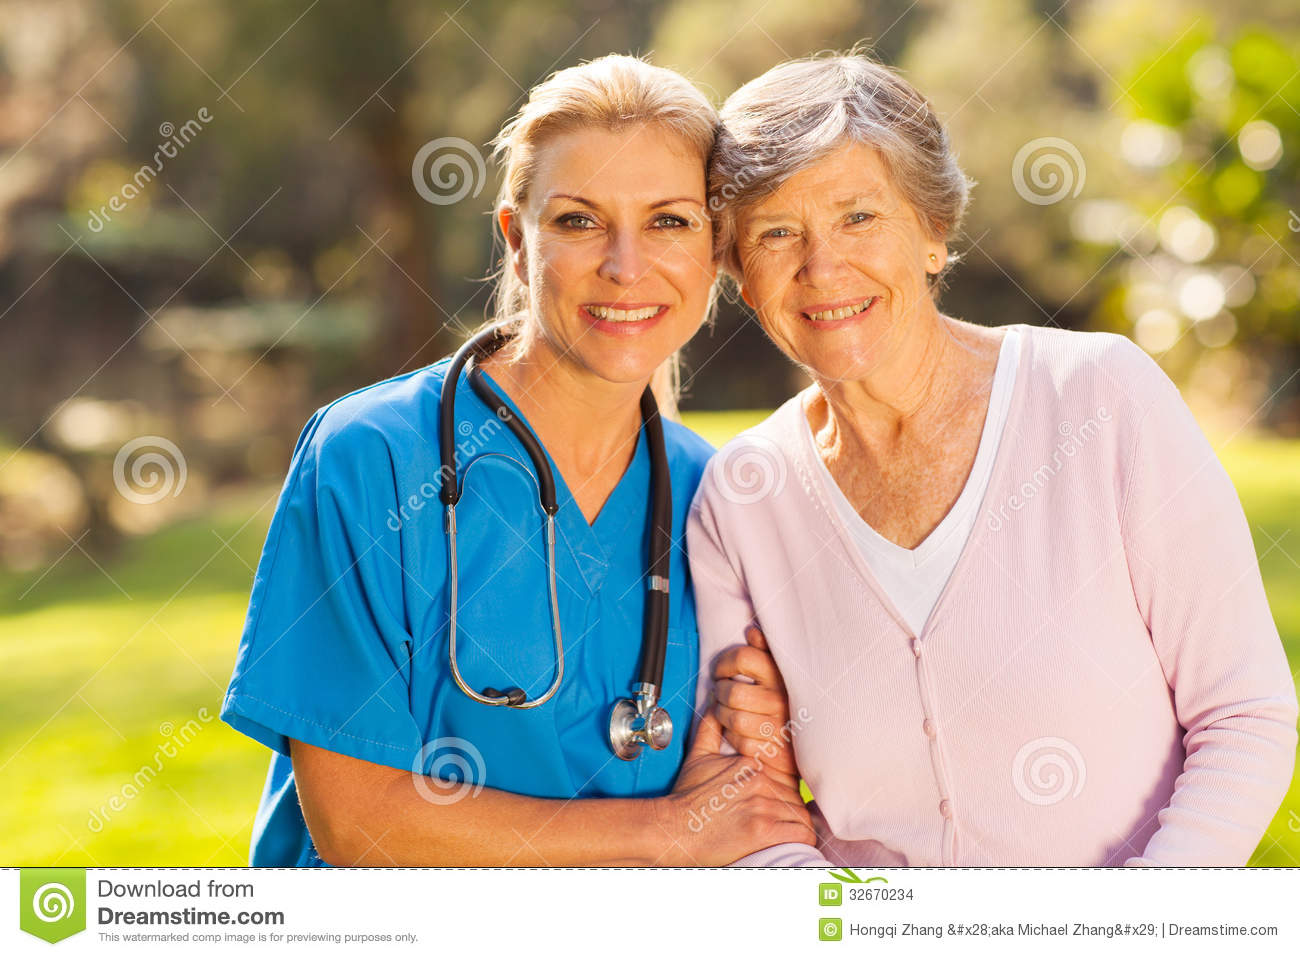 Nurse senior patient